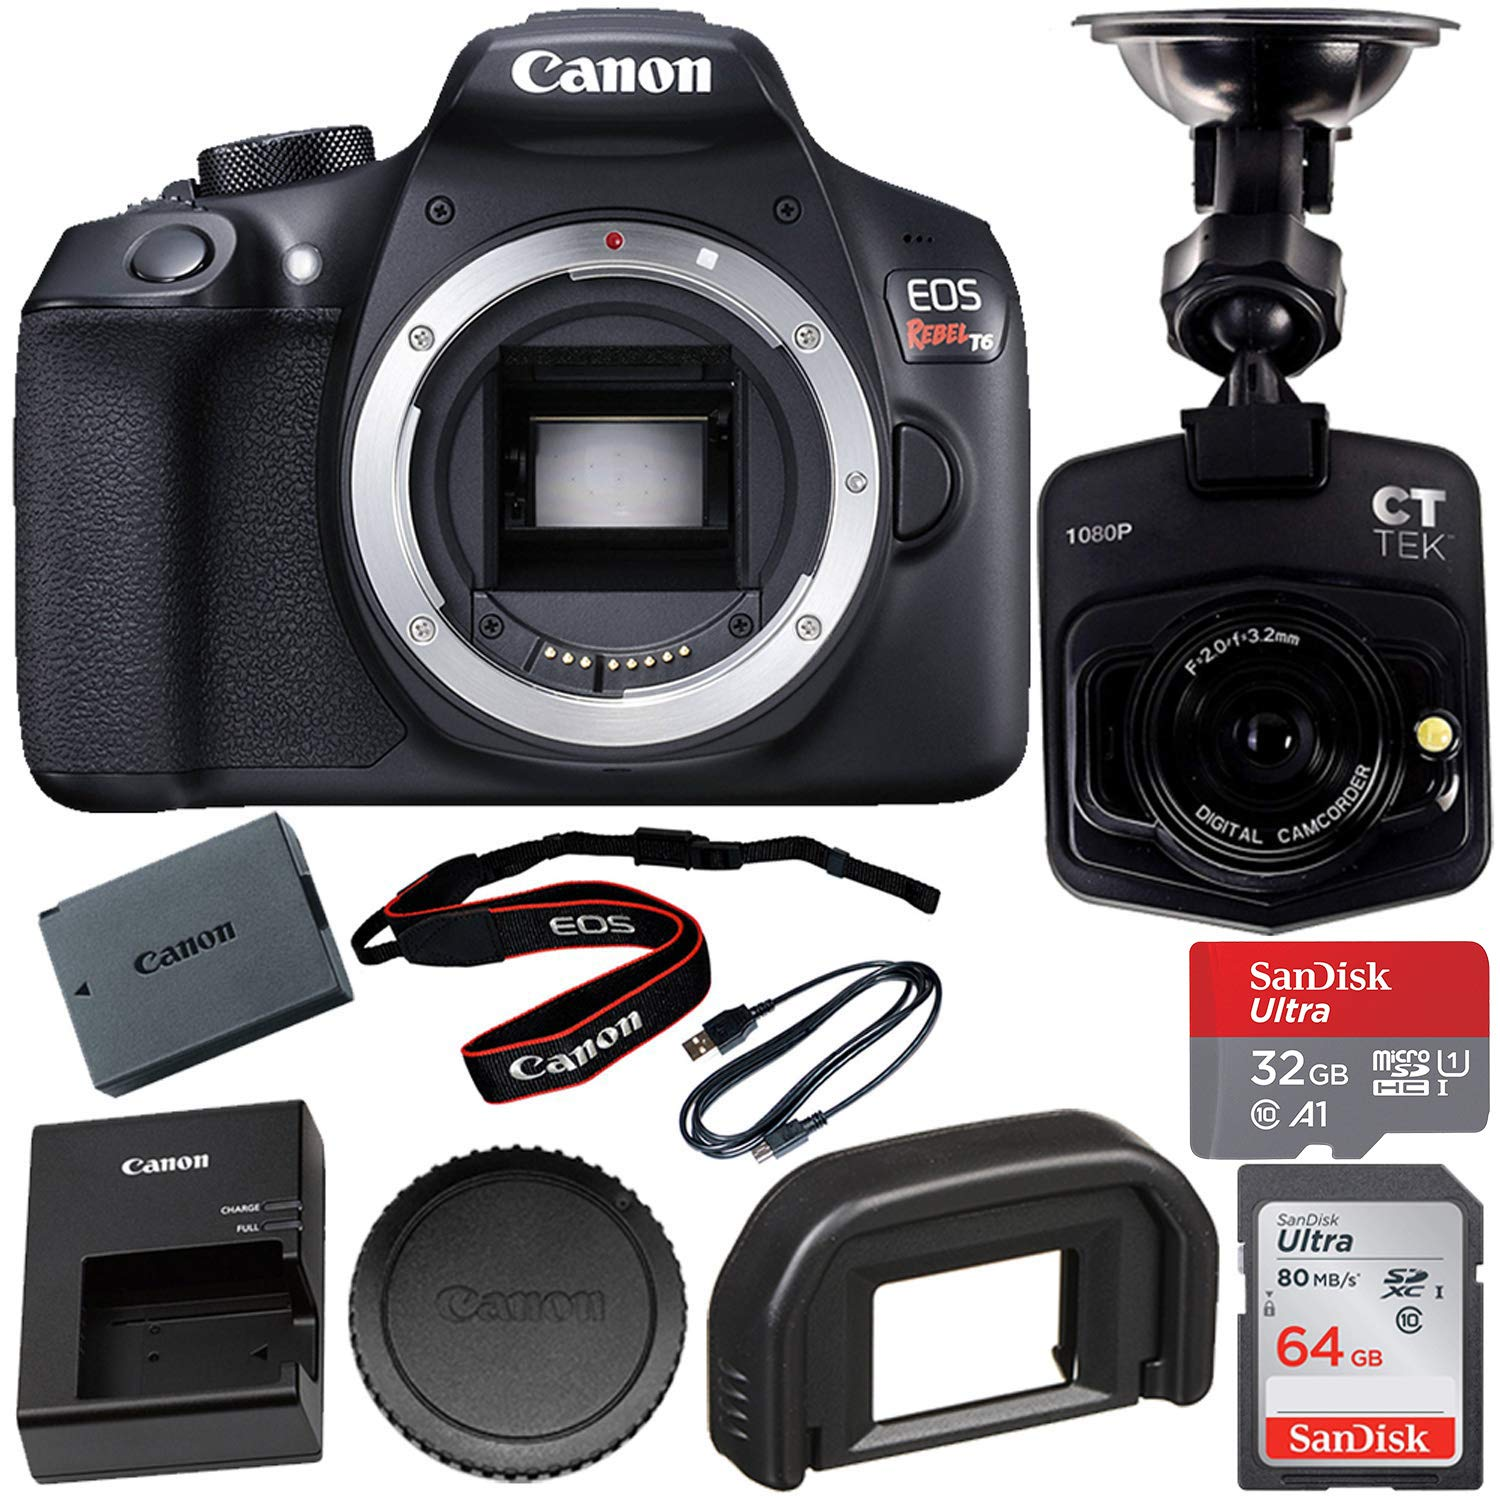 Canon EOS Rebel T6 DSLR Camera (Body Only) with Free Dash Cam Bundle: SanDisk Ultra 32GB microSDHC Memory Card + SanDisk Ultra 64GB SDXC Memory Card and More by Canon